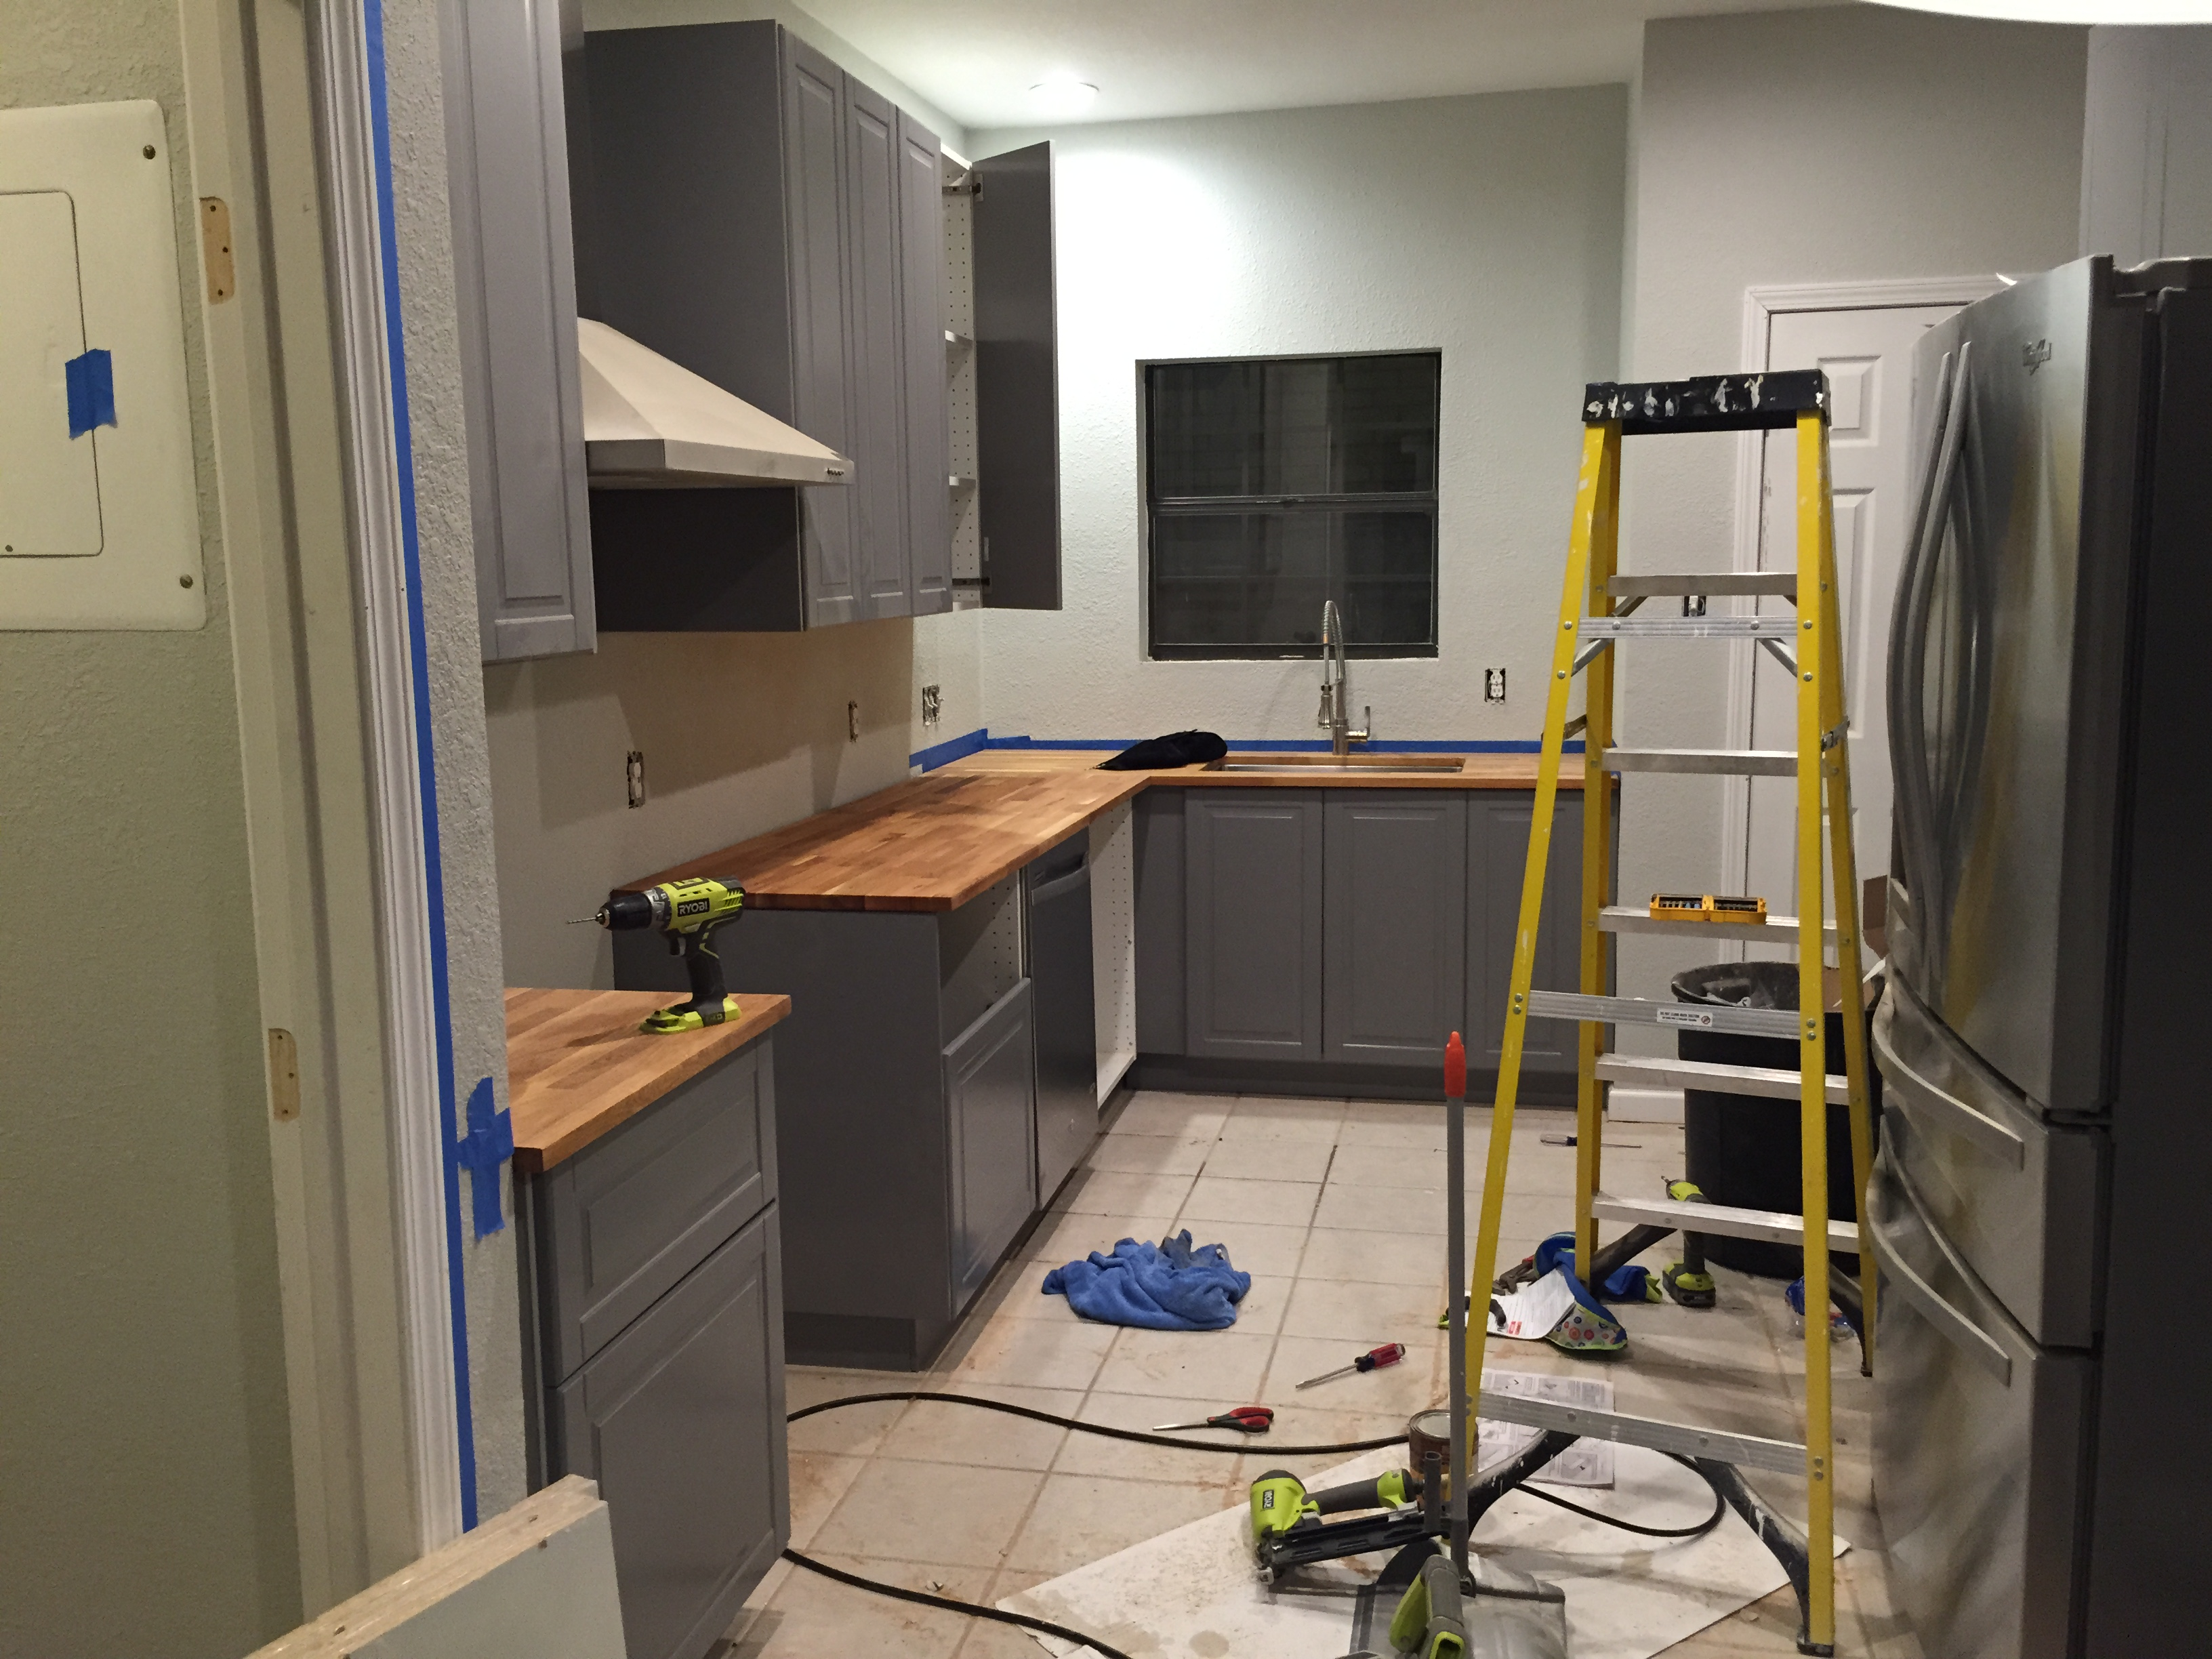 Live From Texas Photos Of Ikd 39 S First Ikea Kitchen Design: ikea kitchen fitting cost